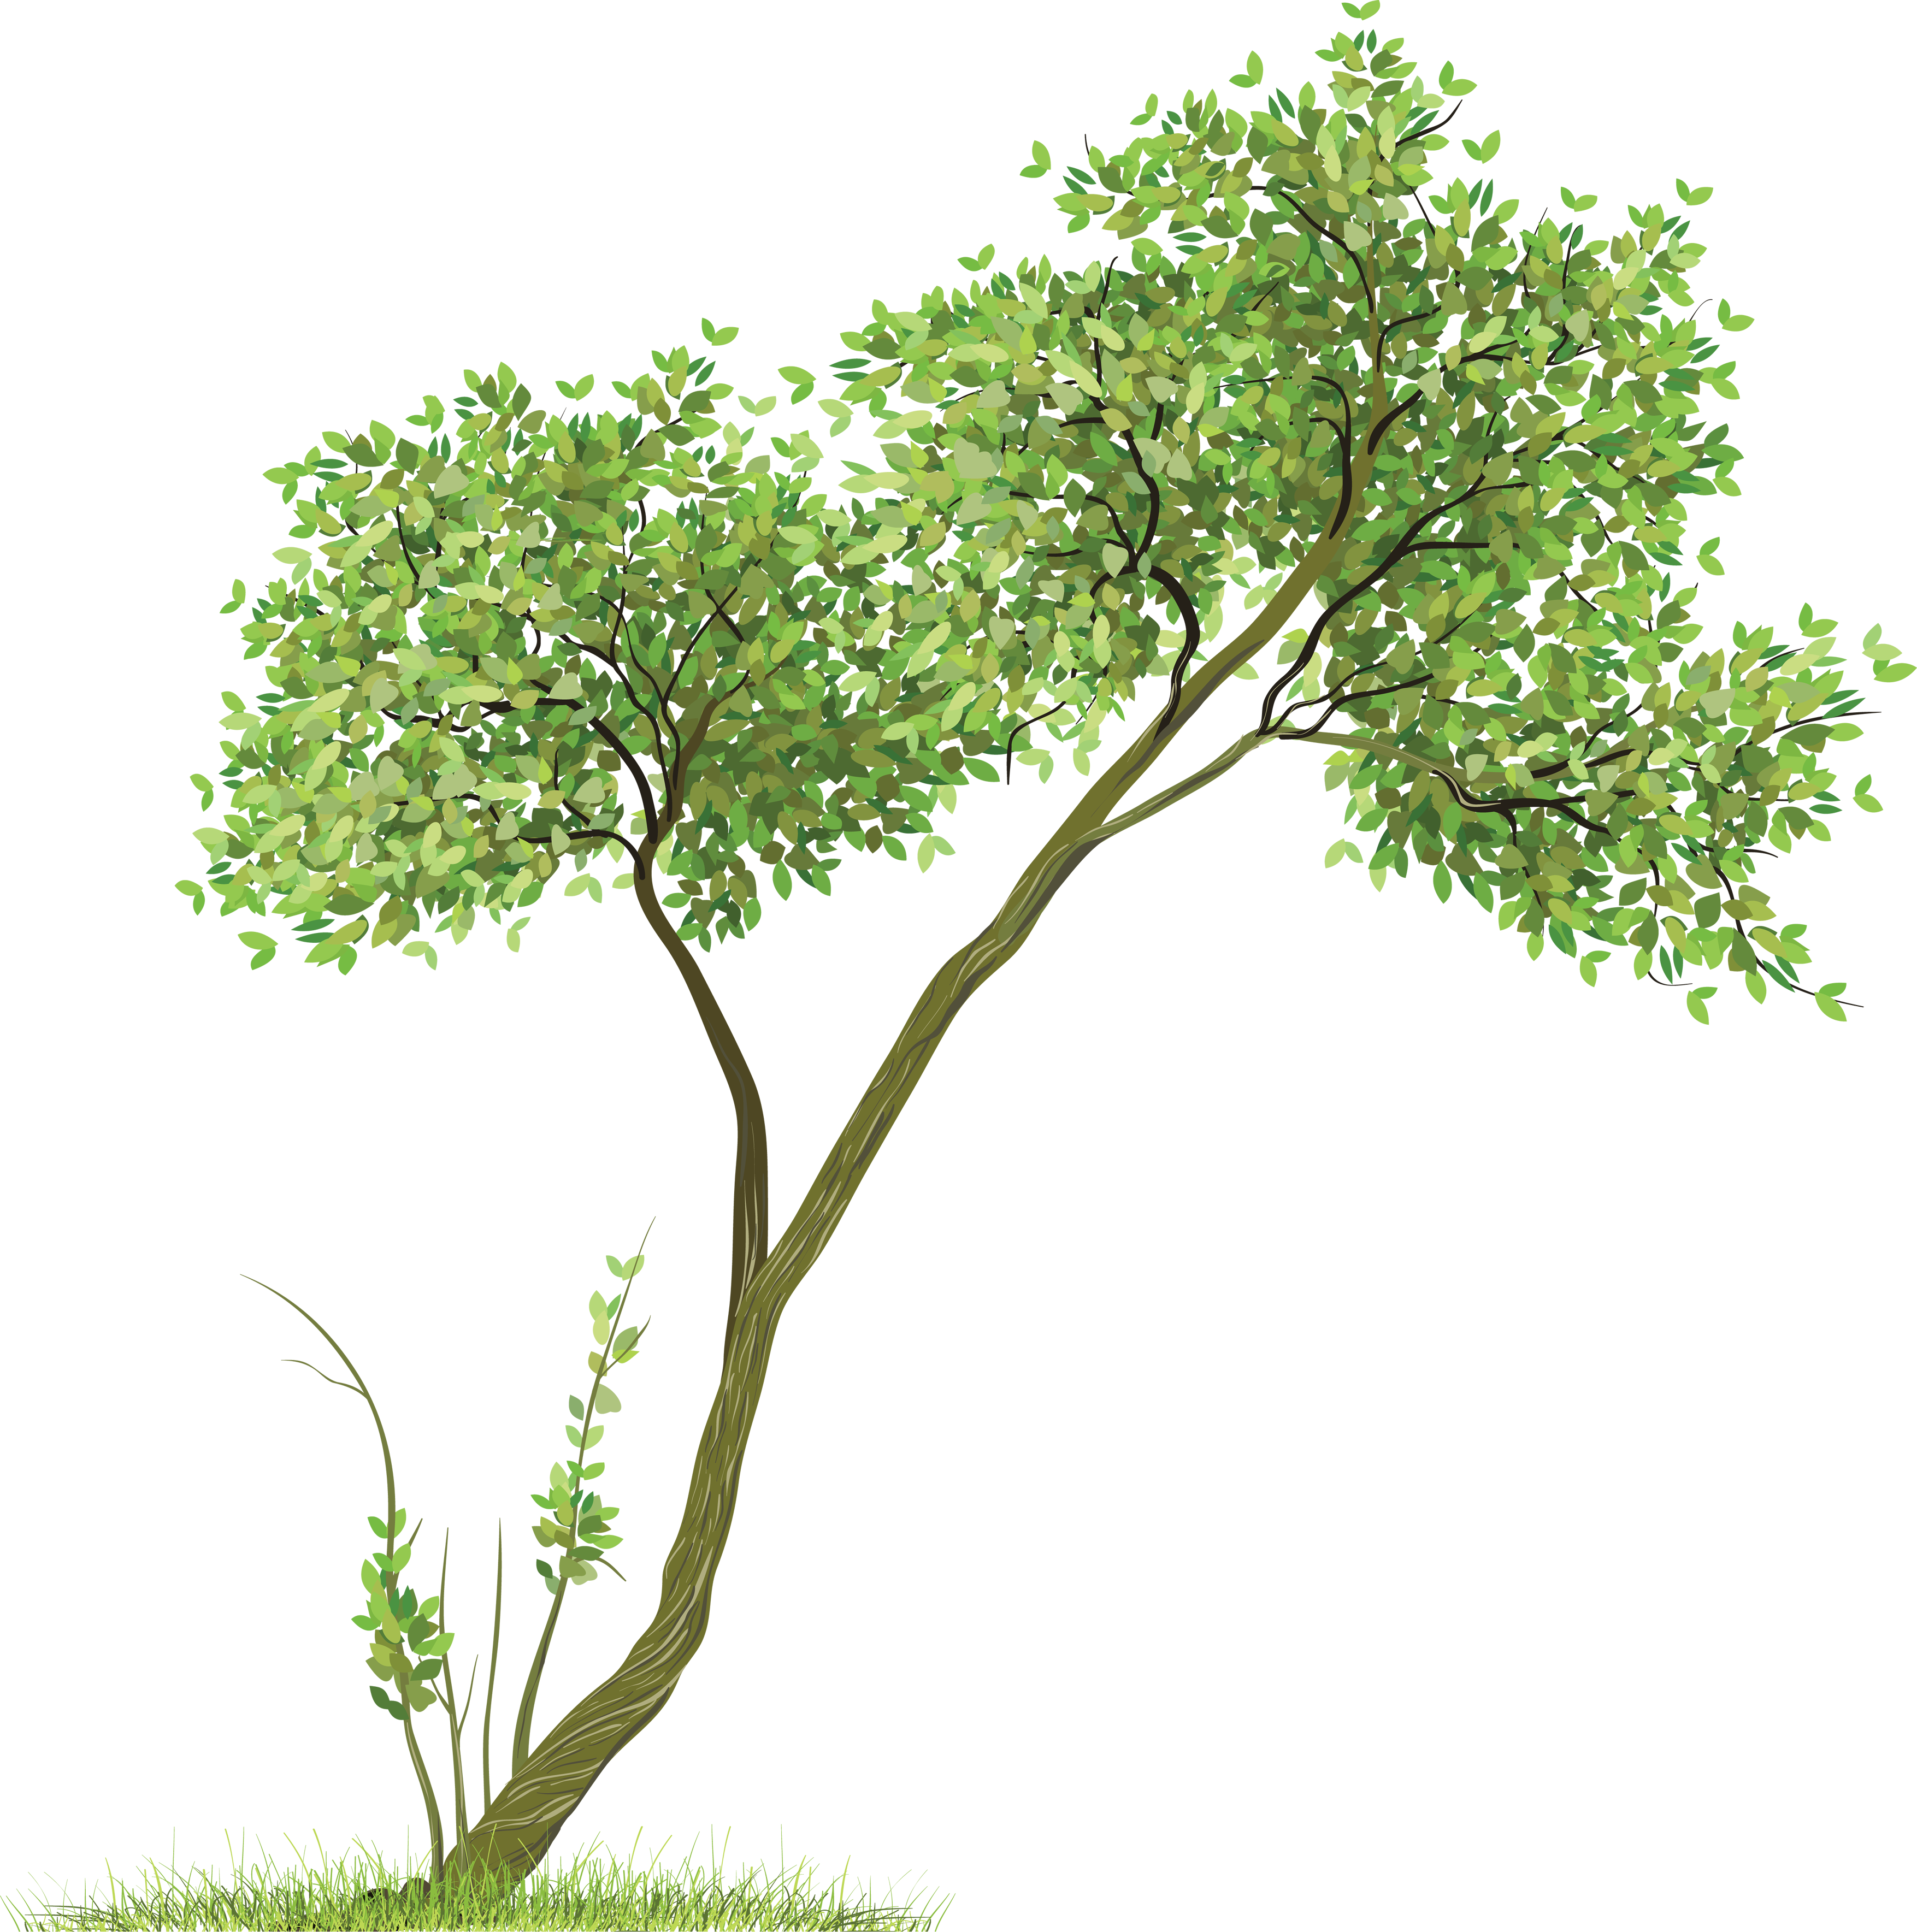 Leafy Tree with Grass PNG Image